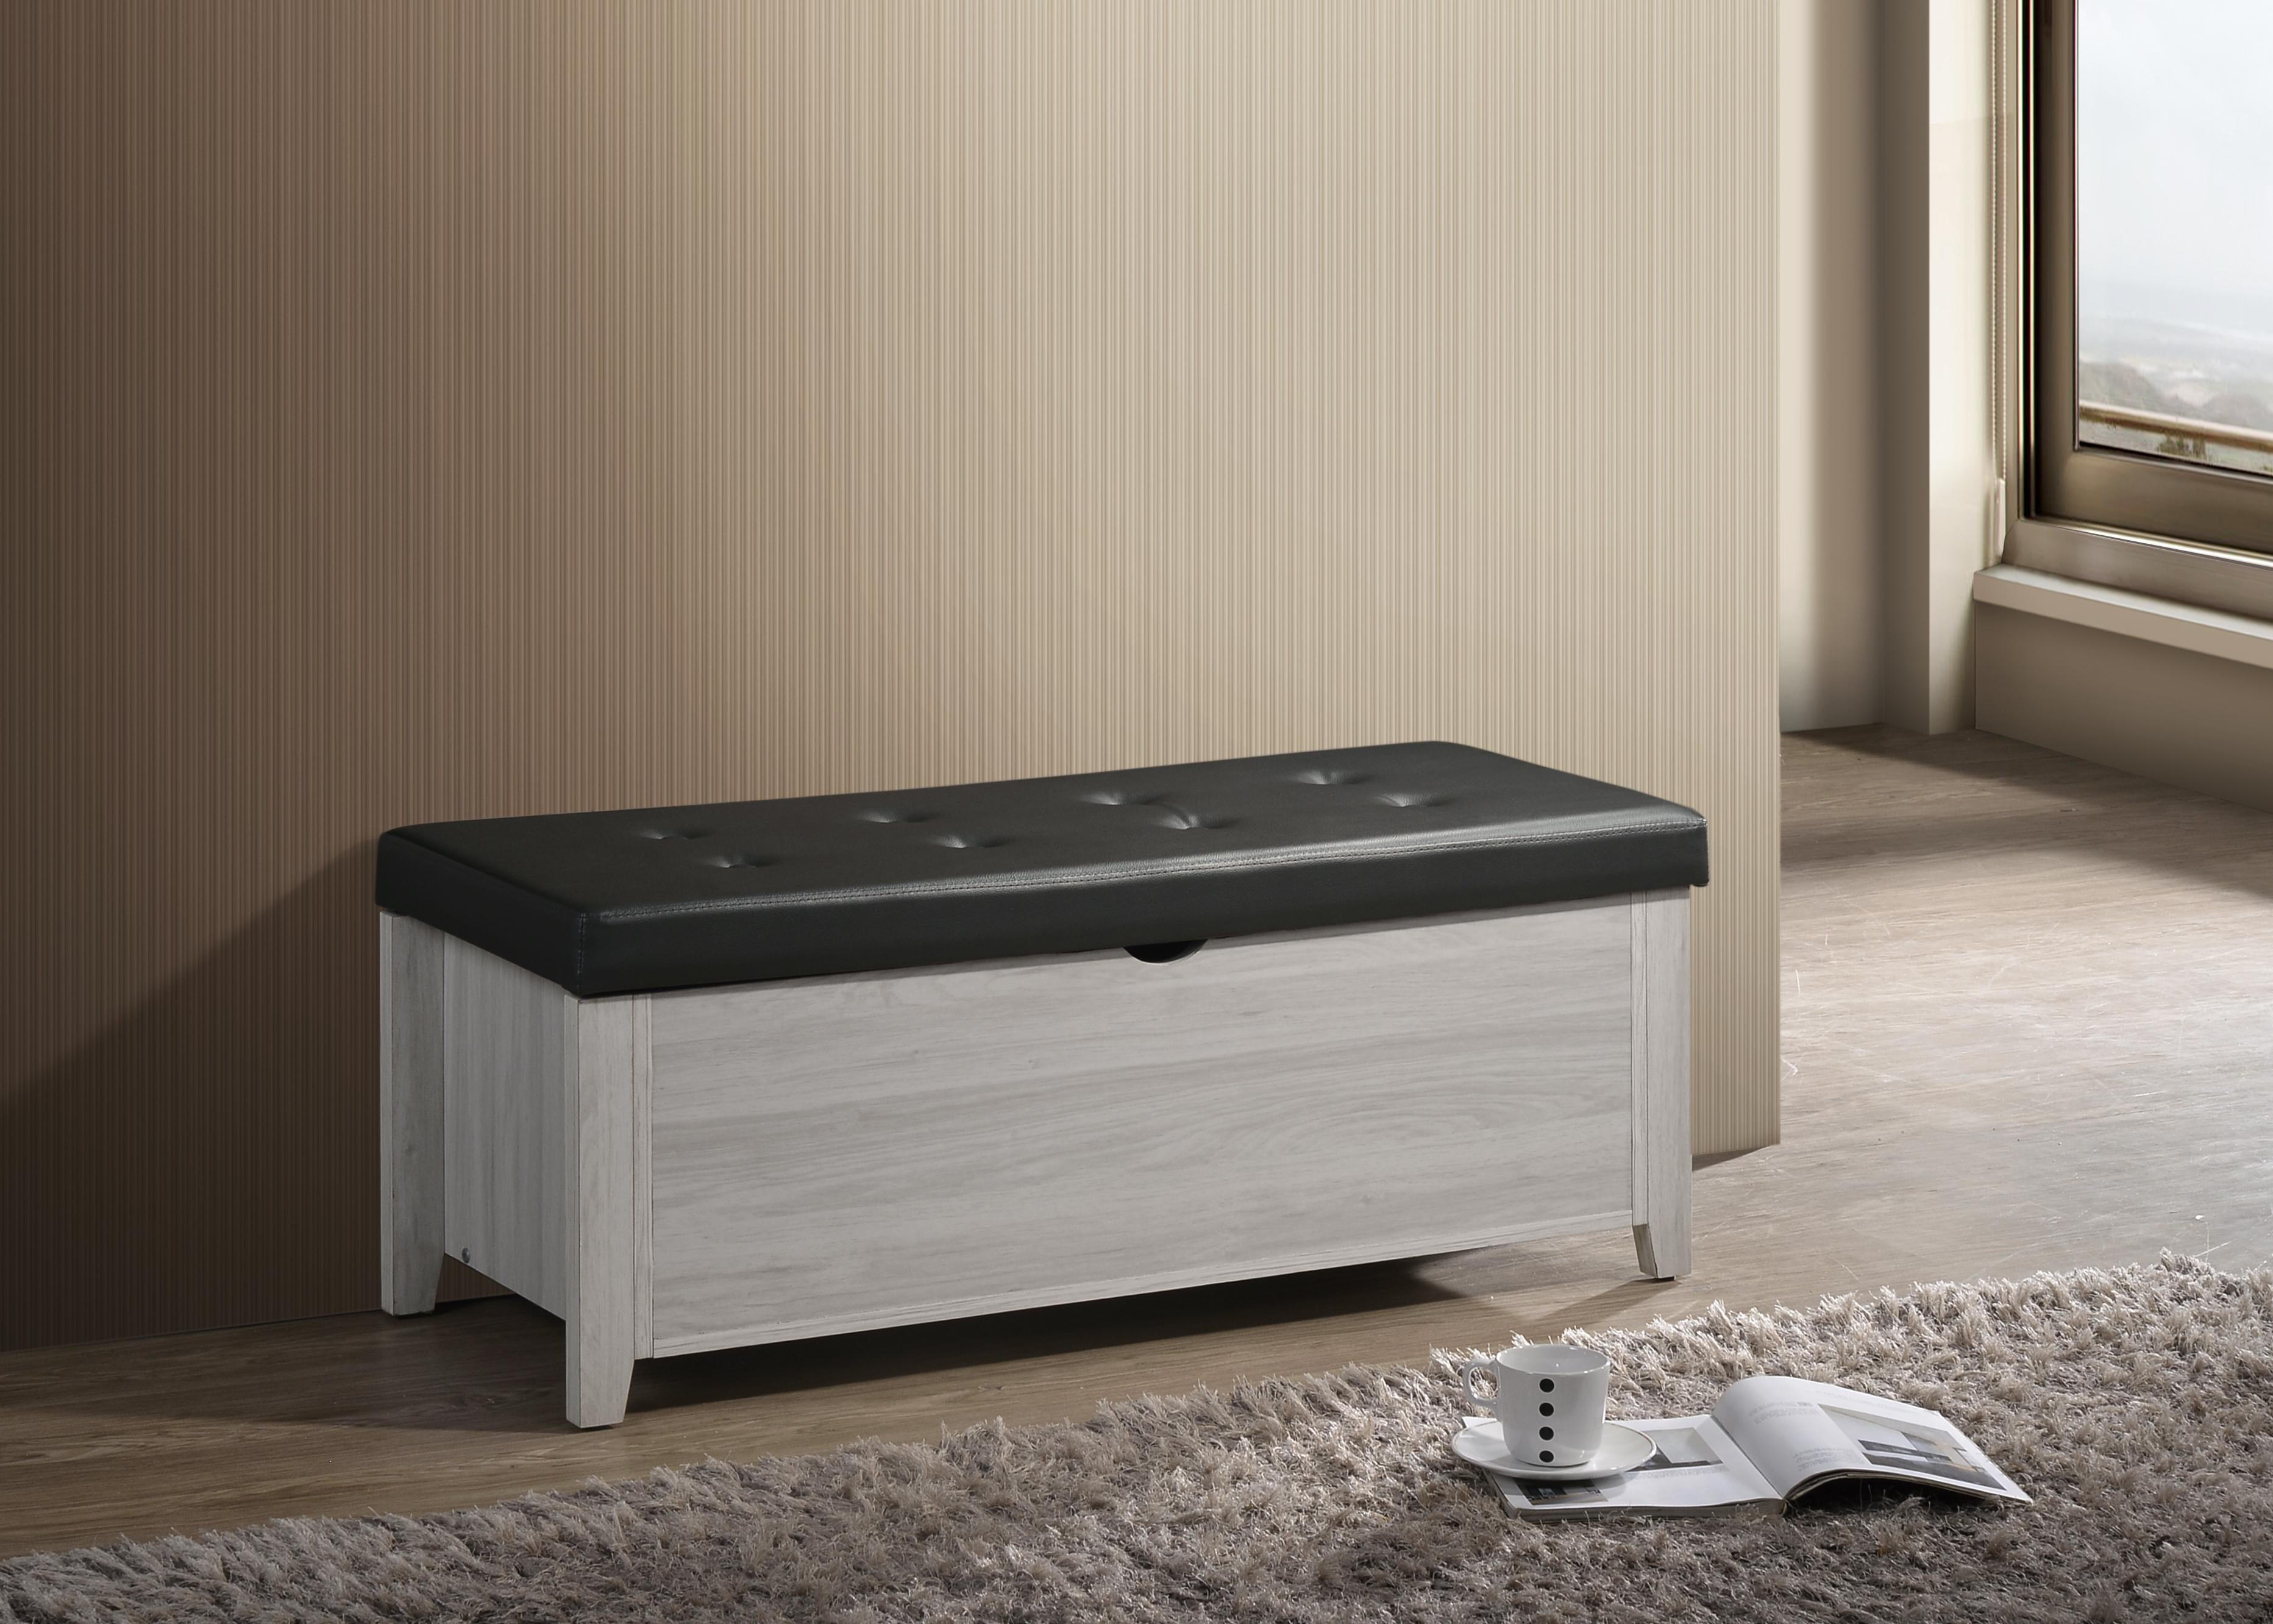 blanket box ottoman storage w leather bench bed foot stool chest toy ottomans footstools poufs